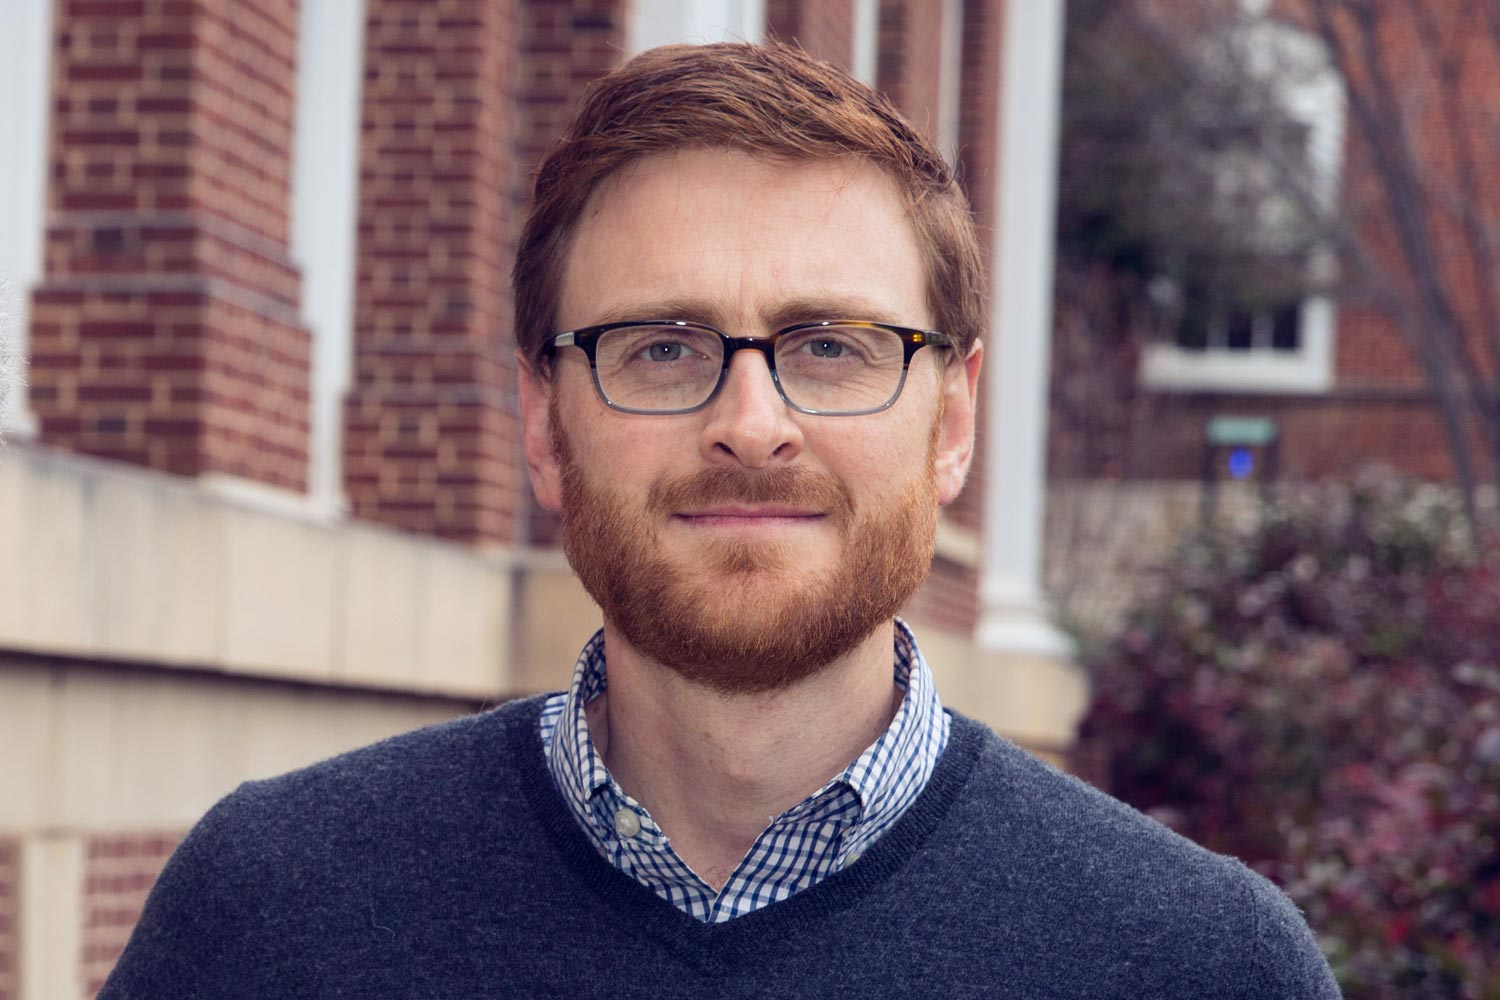 New research by Kieran O'Connor, above, and co-author Amar Cheema, both McIntire School of Commerce professors, has gained traction in academic and popular media.